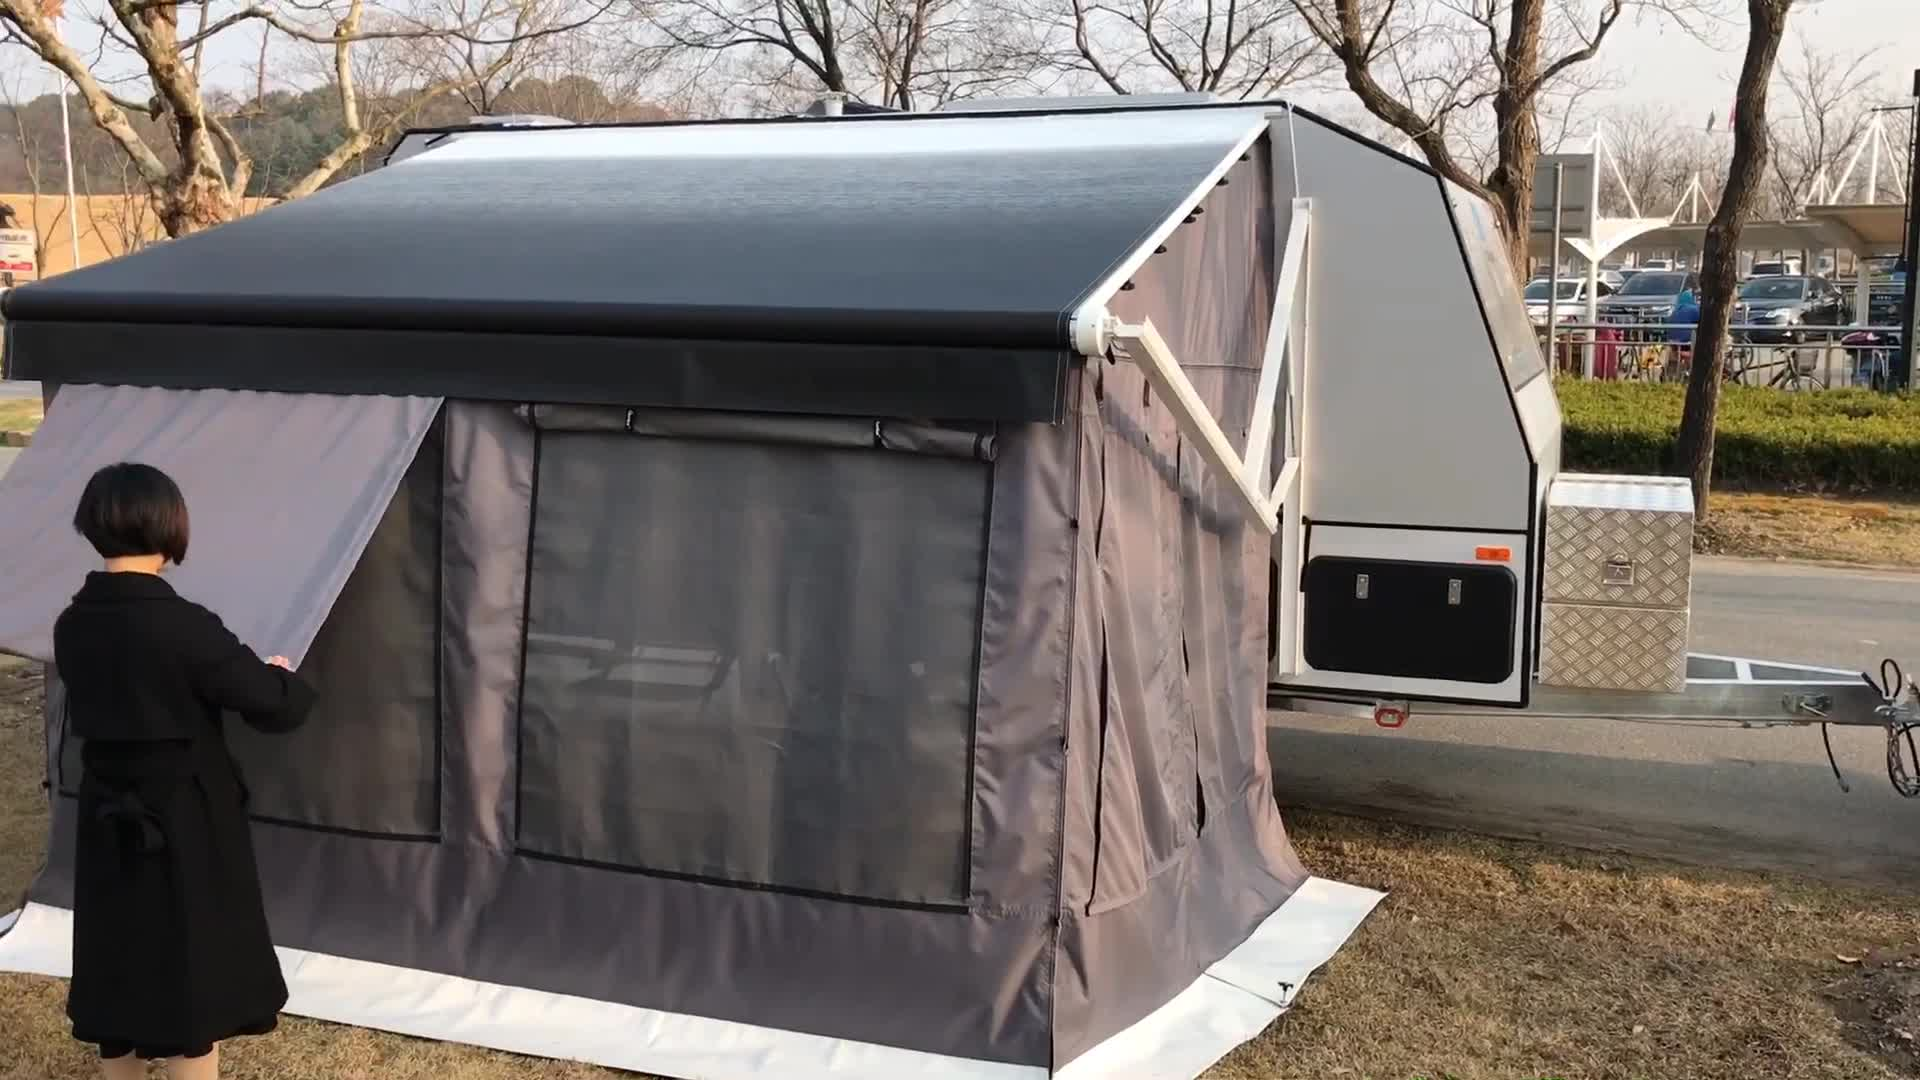 New Sunshade Rv Car Campers Caravan Awning Tent For Rv ...